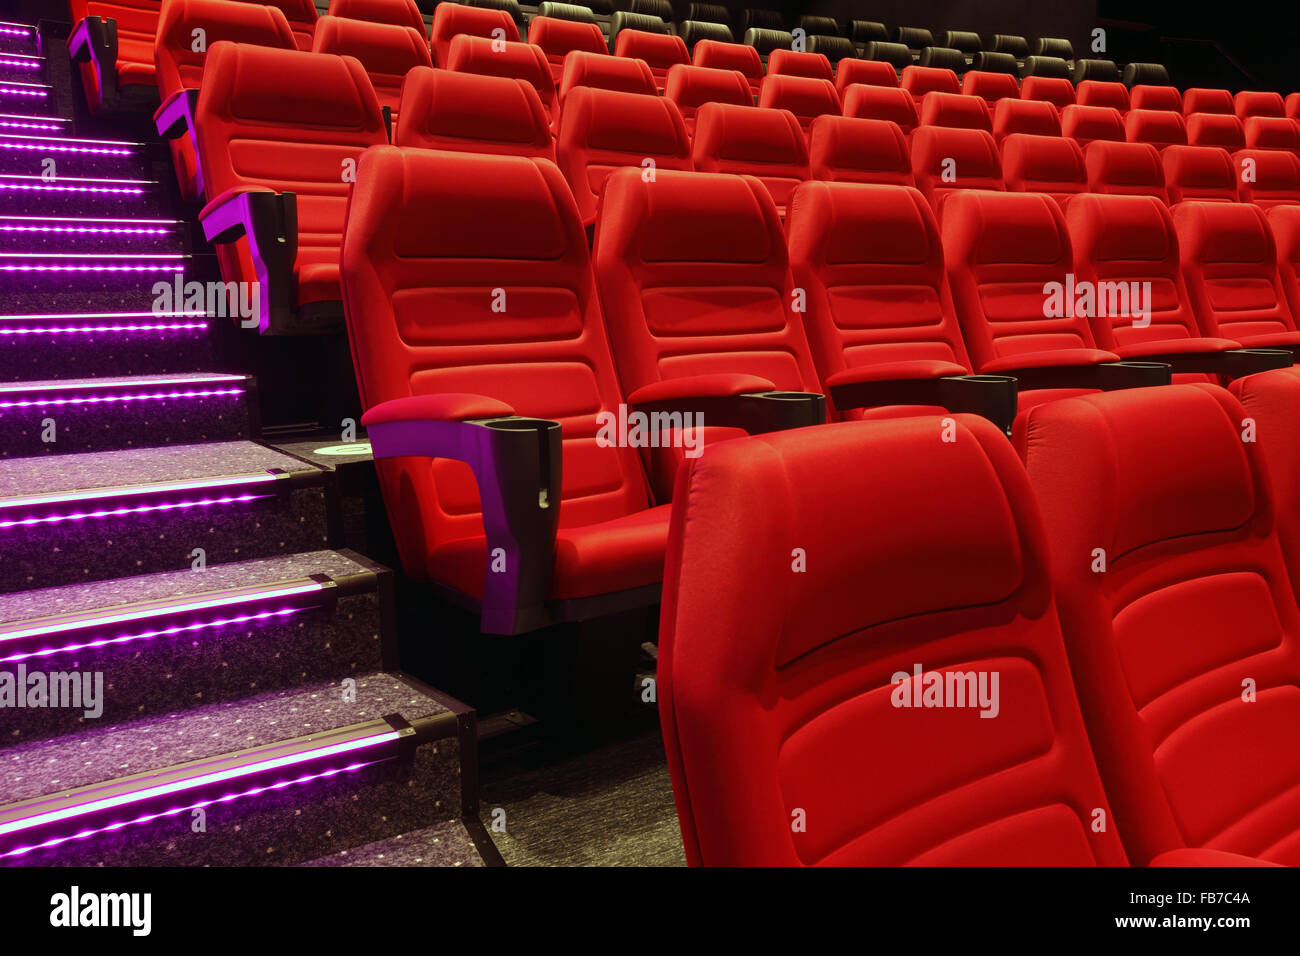 red theater seats theatre empty rows of red theater or movie seats stock photo 92976250 alamy